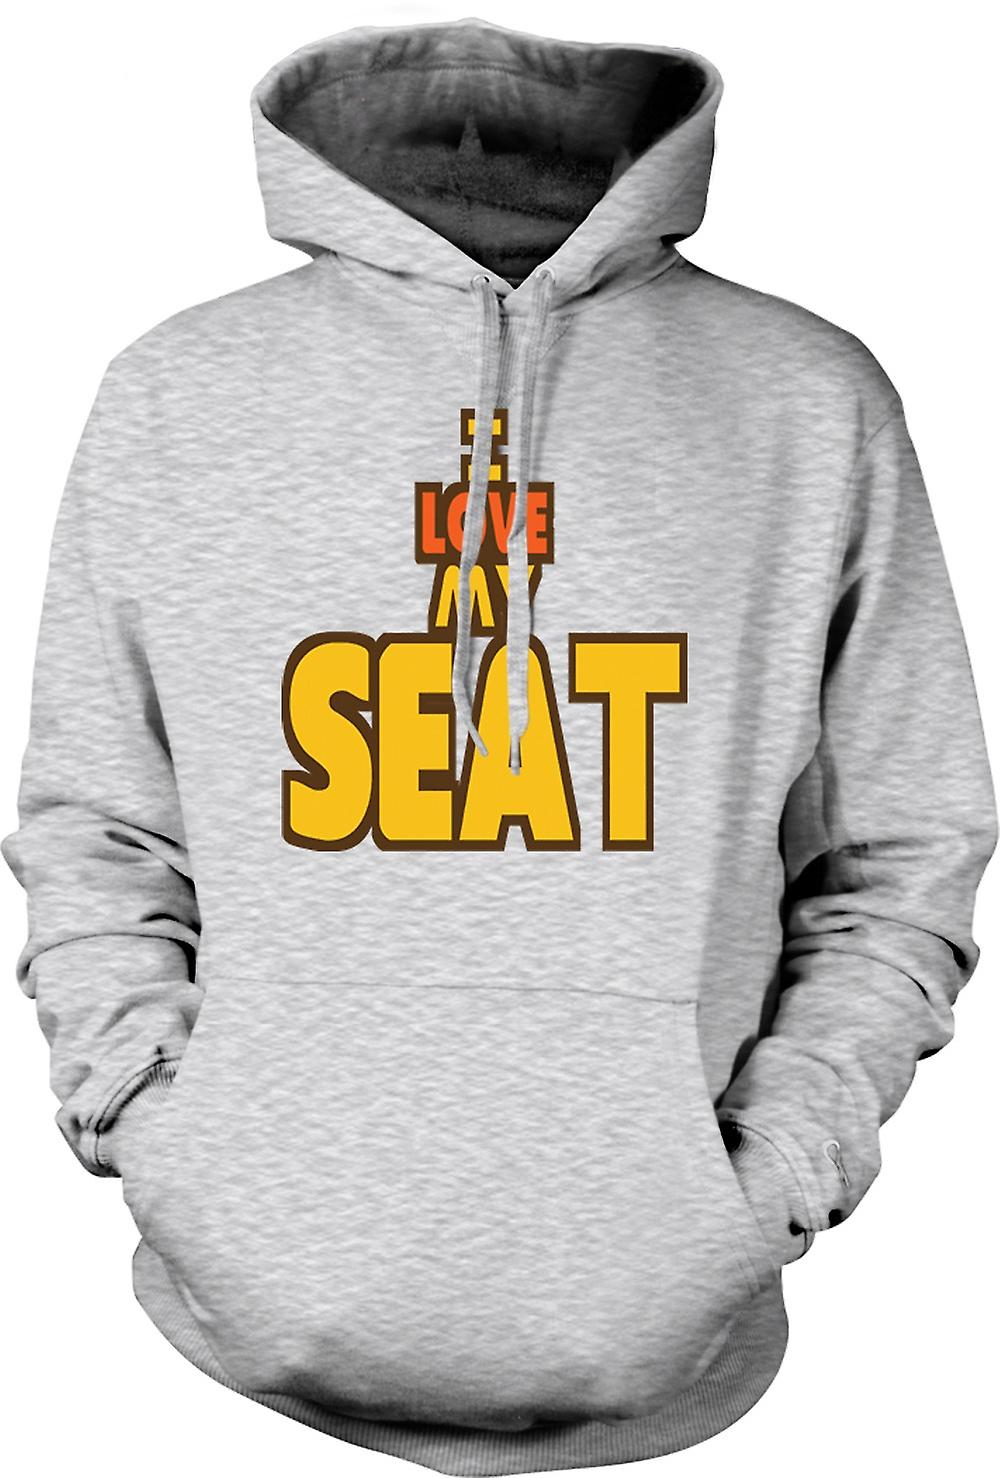 Mens Hoodie - I Love My Seat - Car Enthusiast